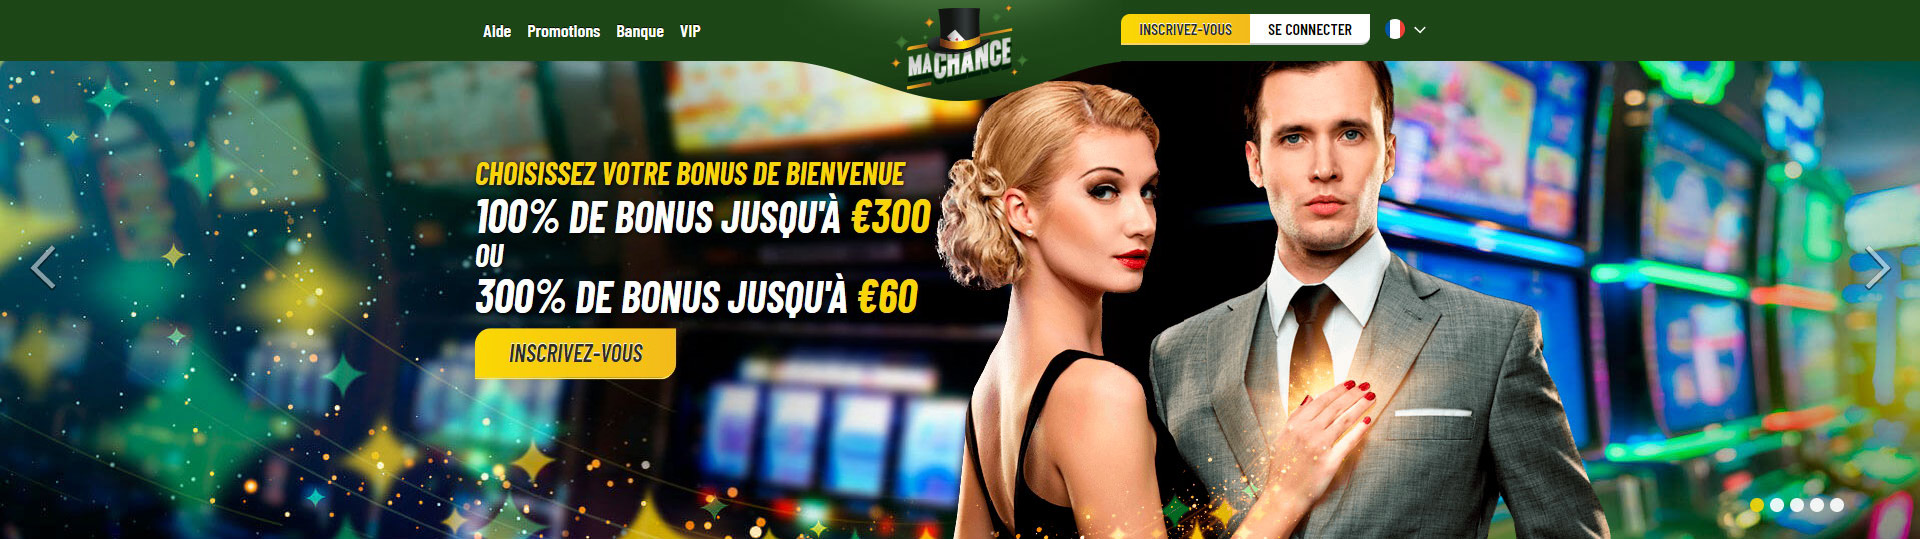 MaChance Casino avis